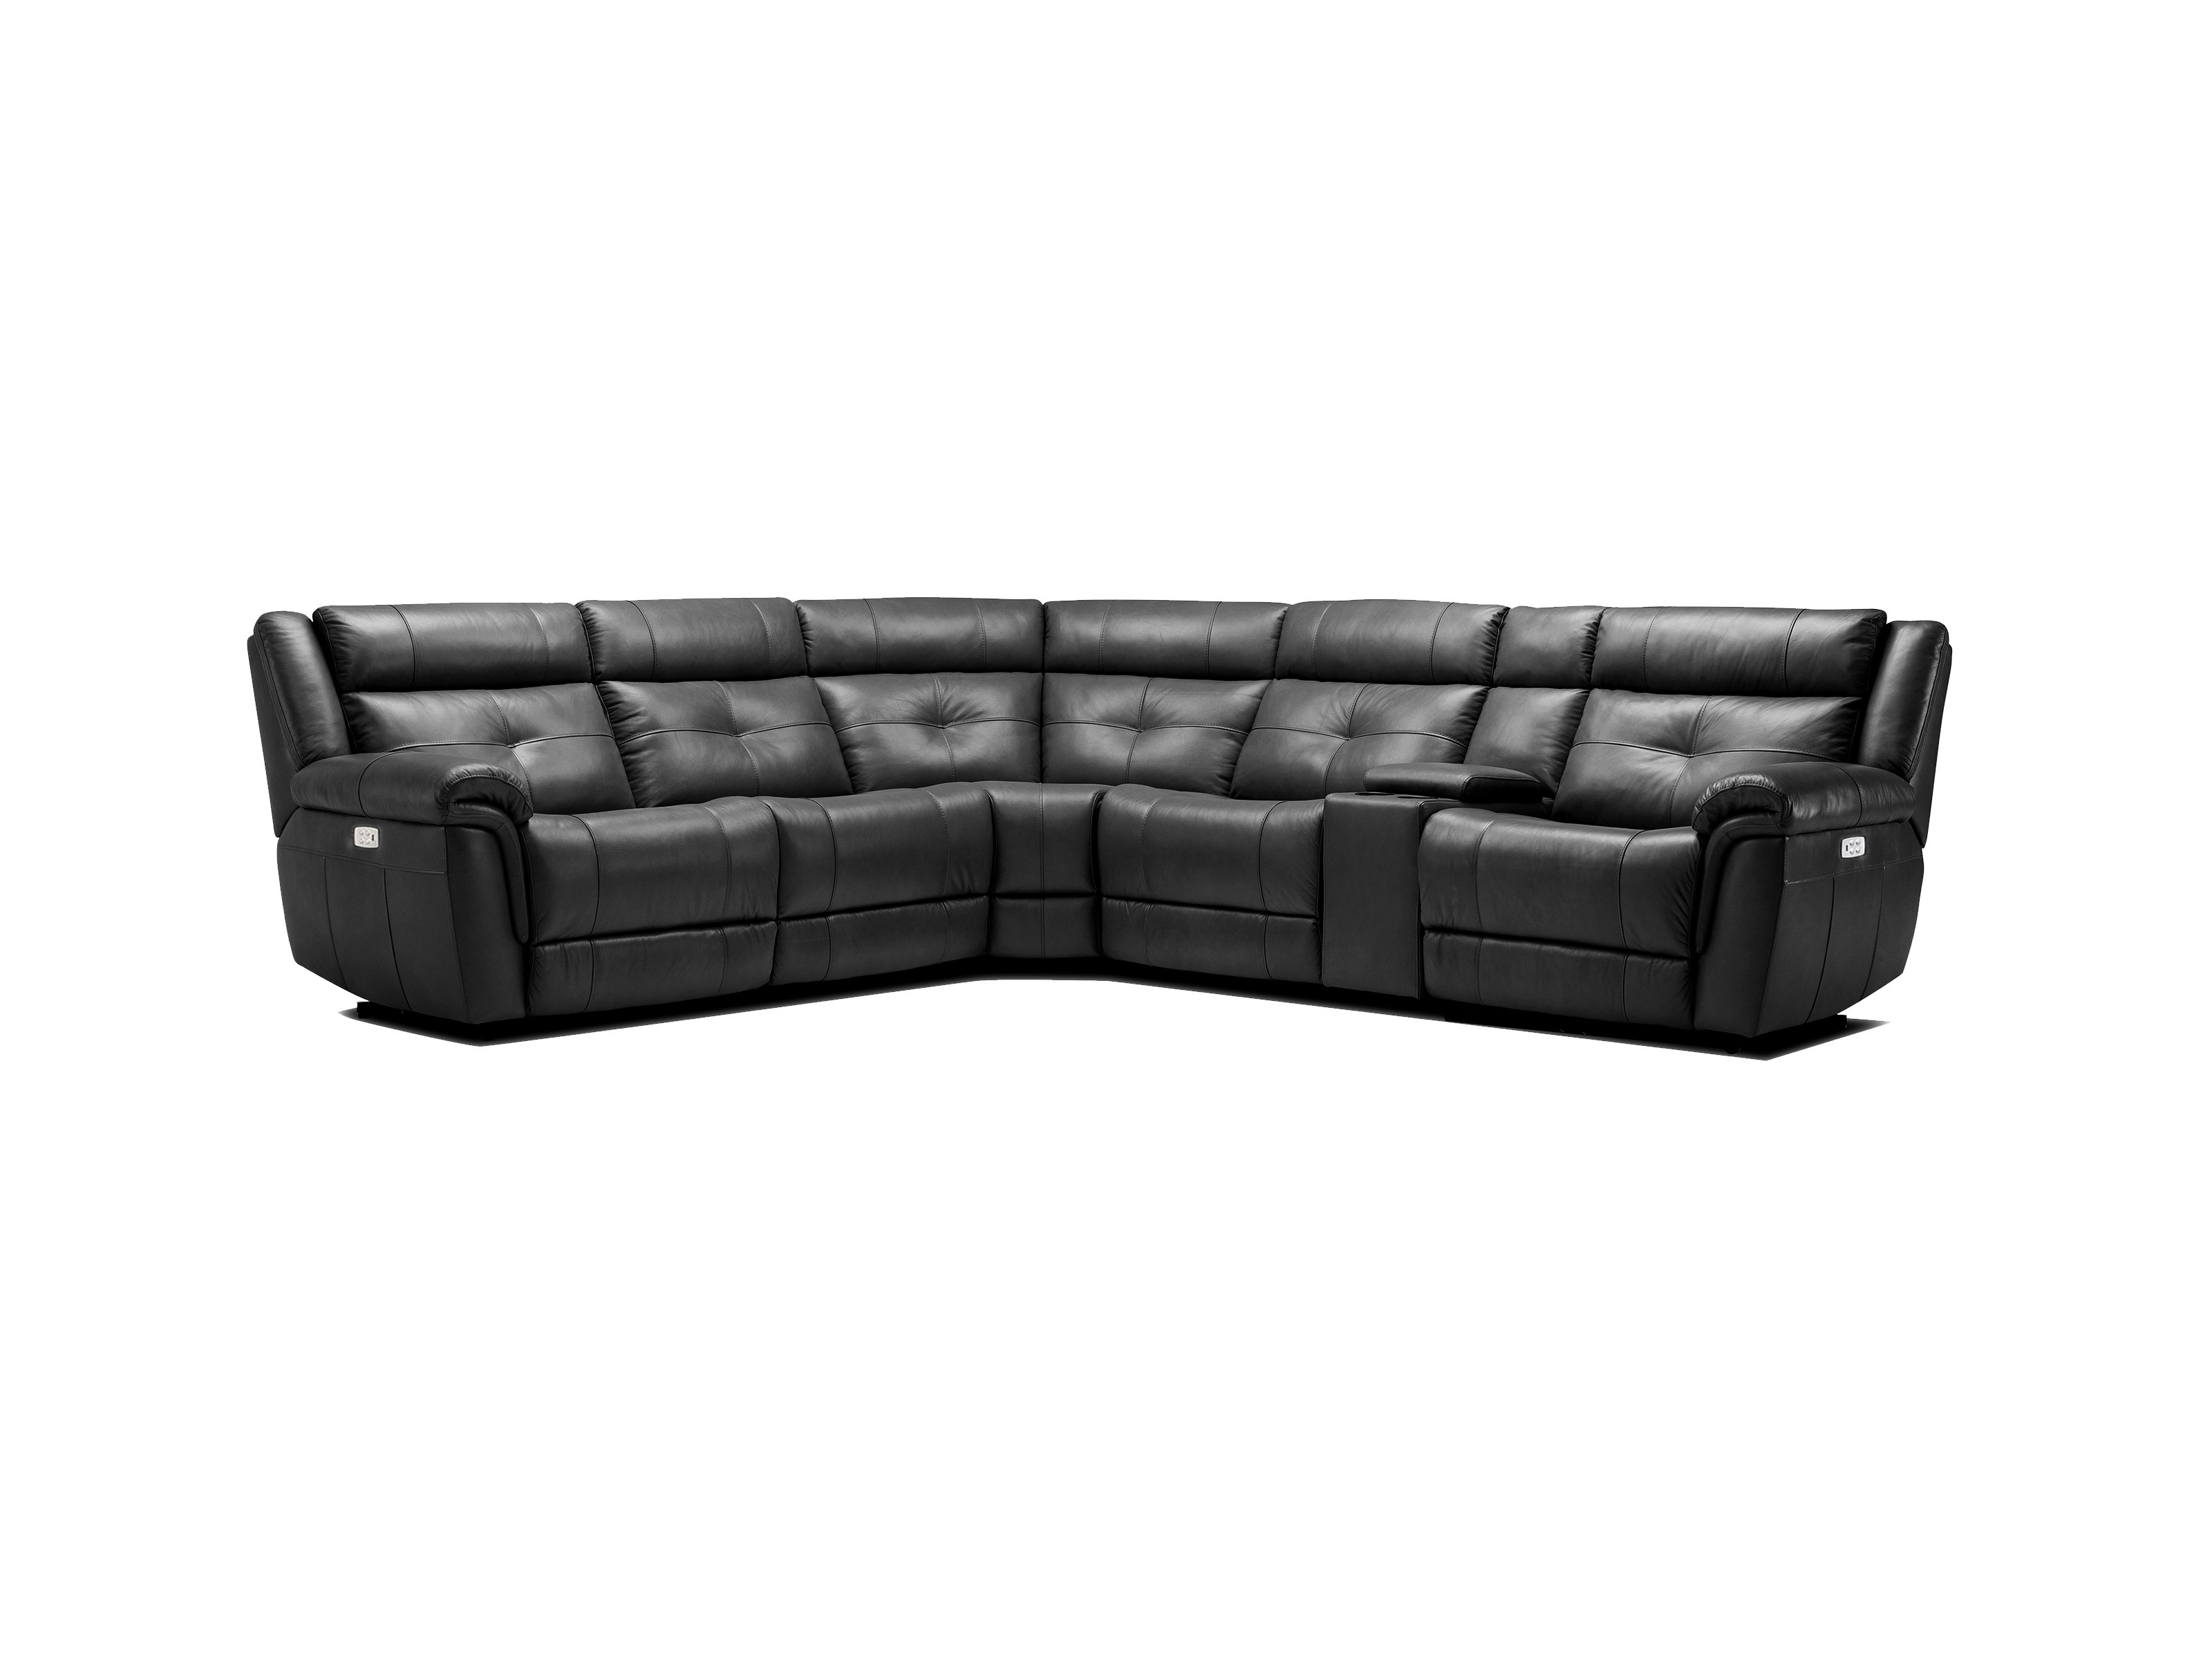 Dayton Ohio Sectional Sofas For Popular Sectional Sofas, Leather Sectional, Couch (View 5 of 20)